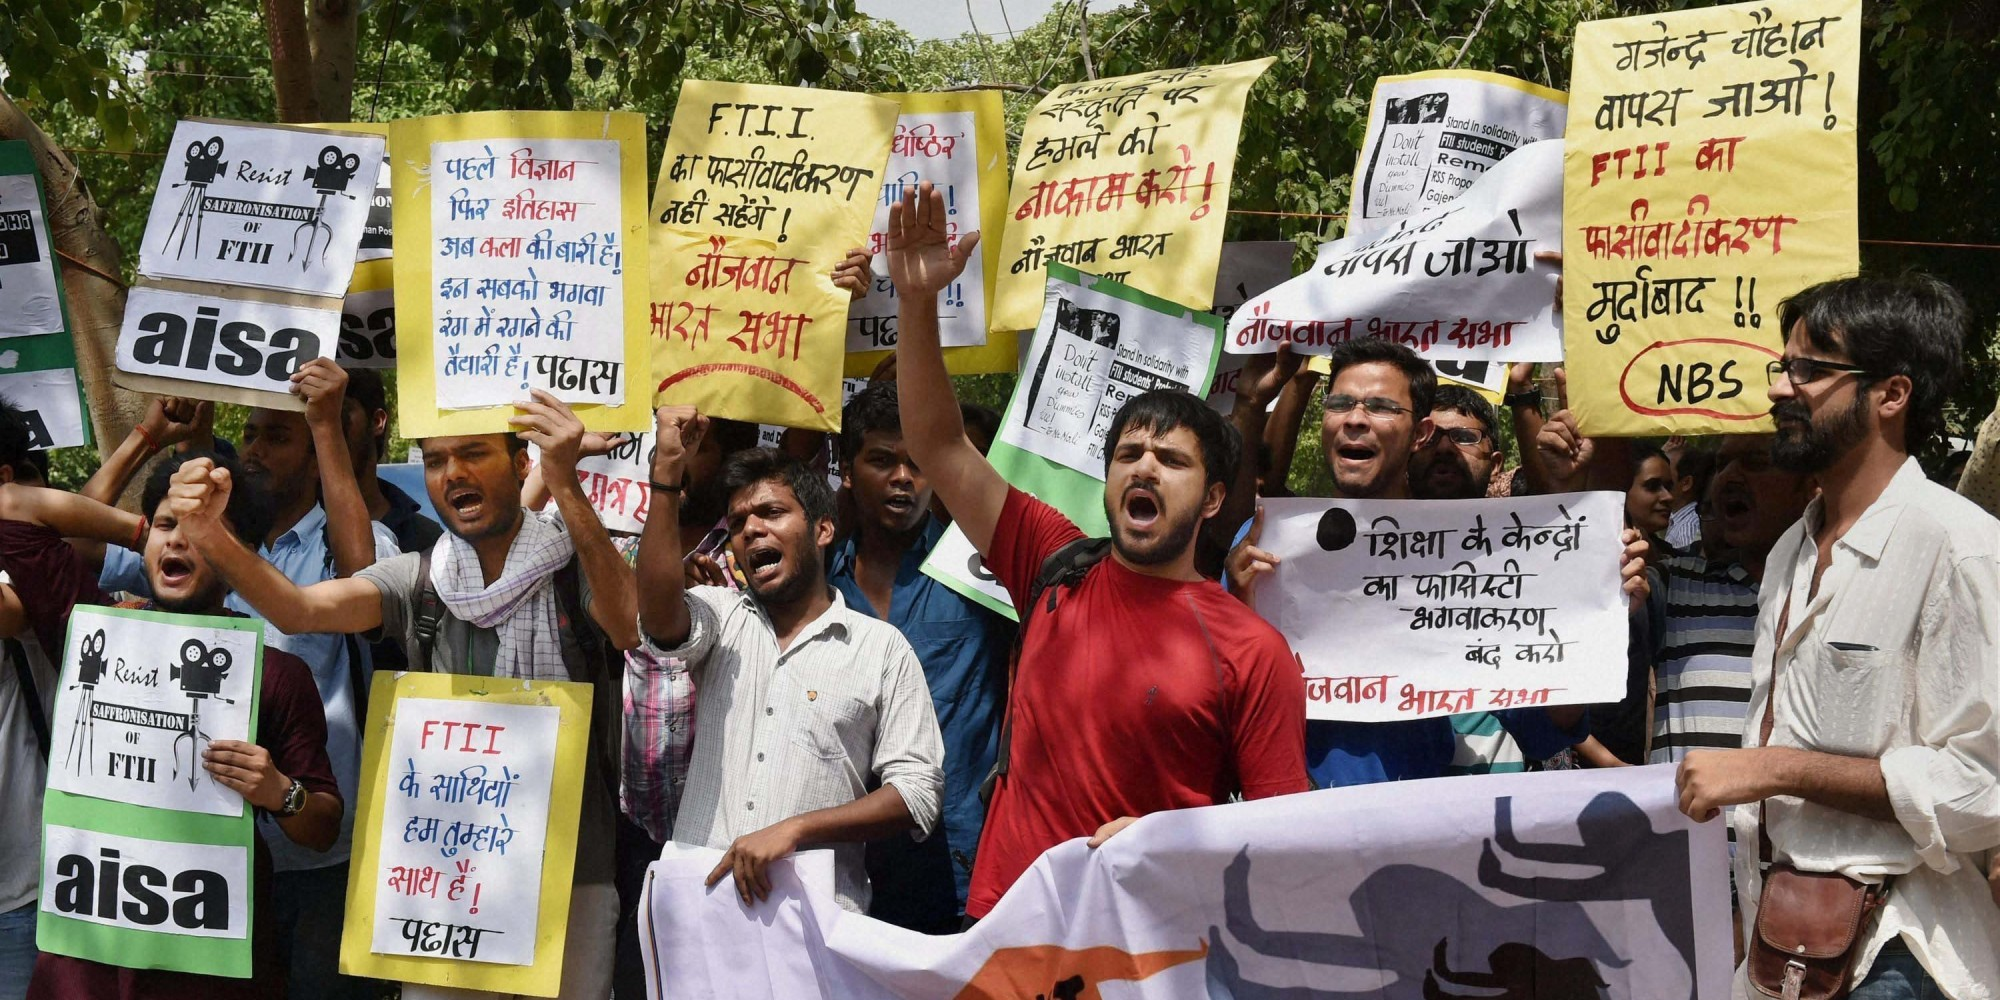 New Delhi: Students protest against the appointment of Gajendra Chauhan as the chairman of the FTII governing council, in New Delhi on Friday. PTI Photo by Atul Yadav  (PTI7_3_2015_000068B)